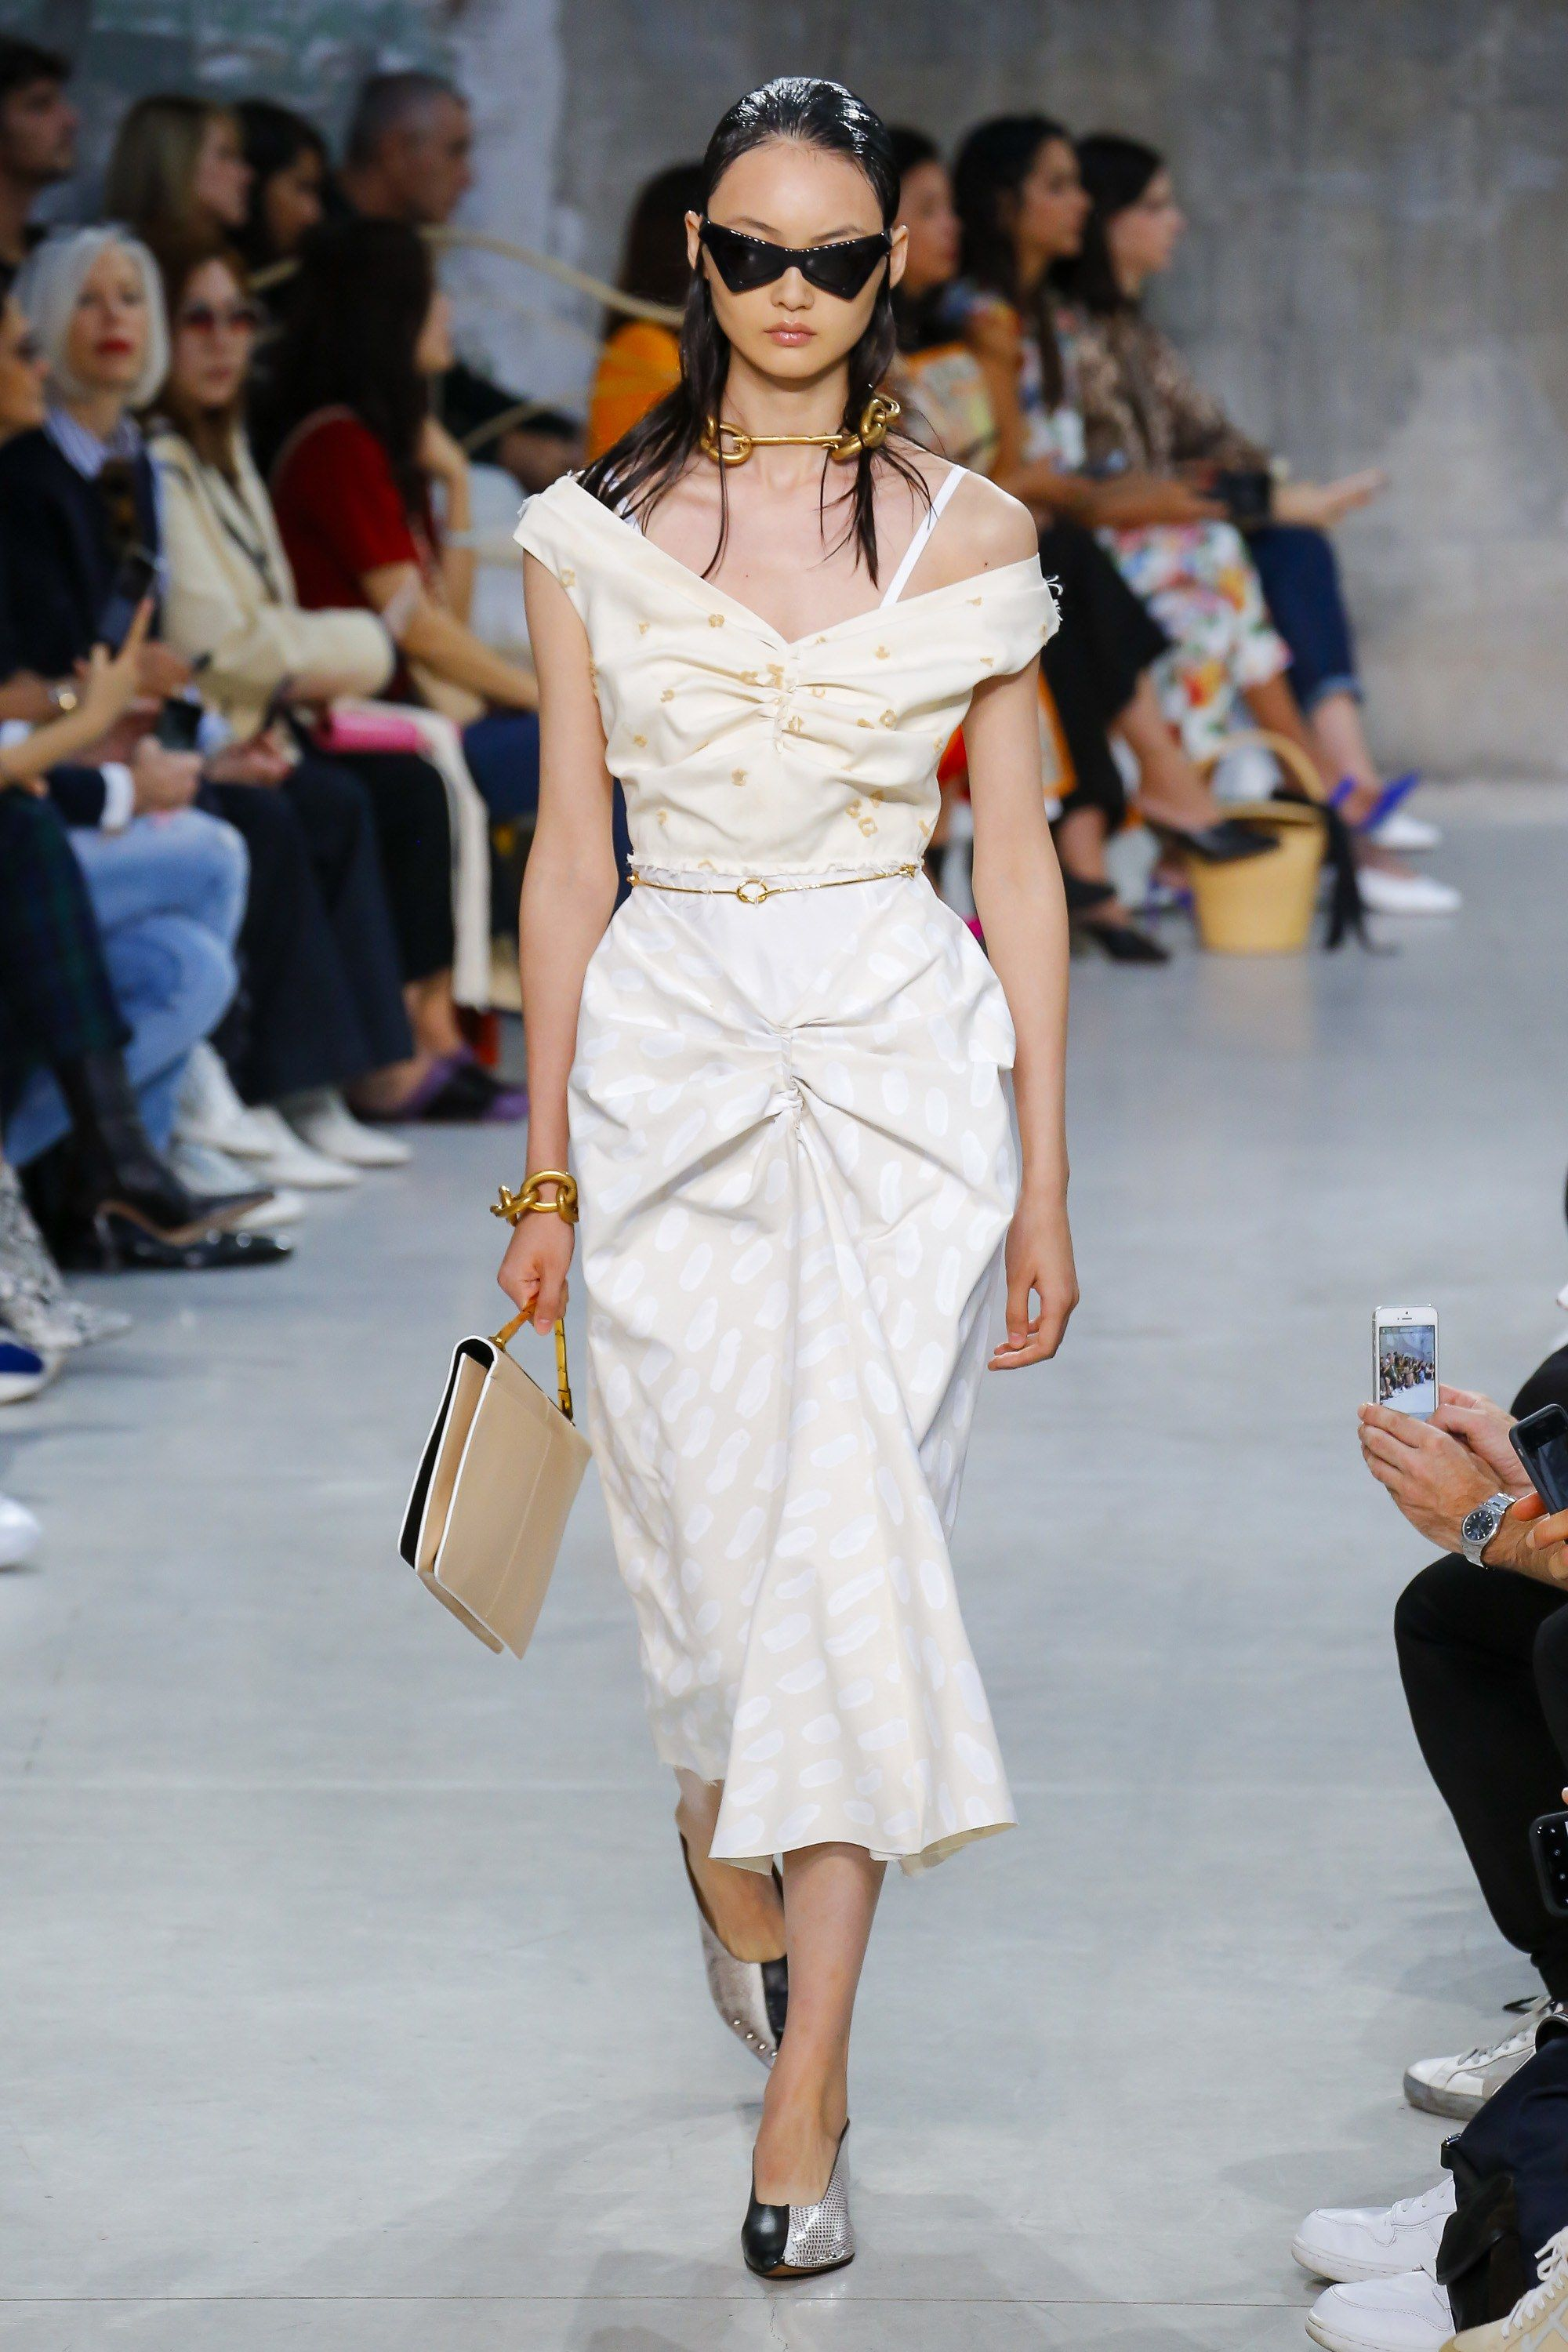 photo Marni SpringSummer 2019 Collection Focuses on the Waist